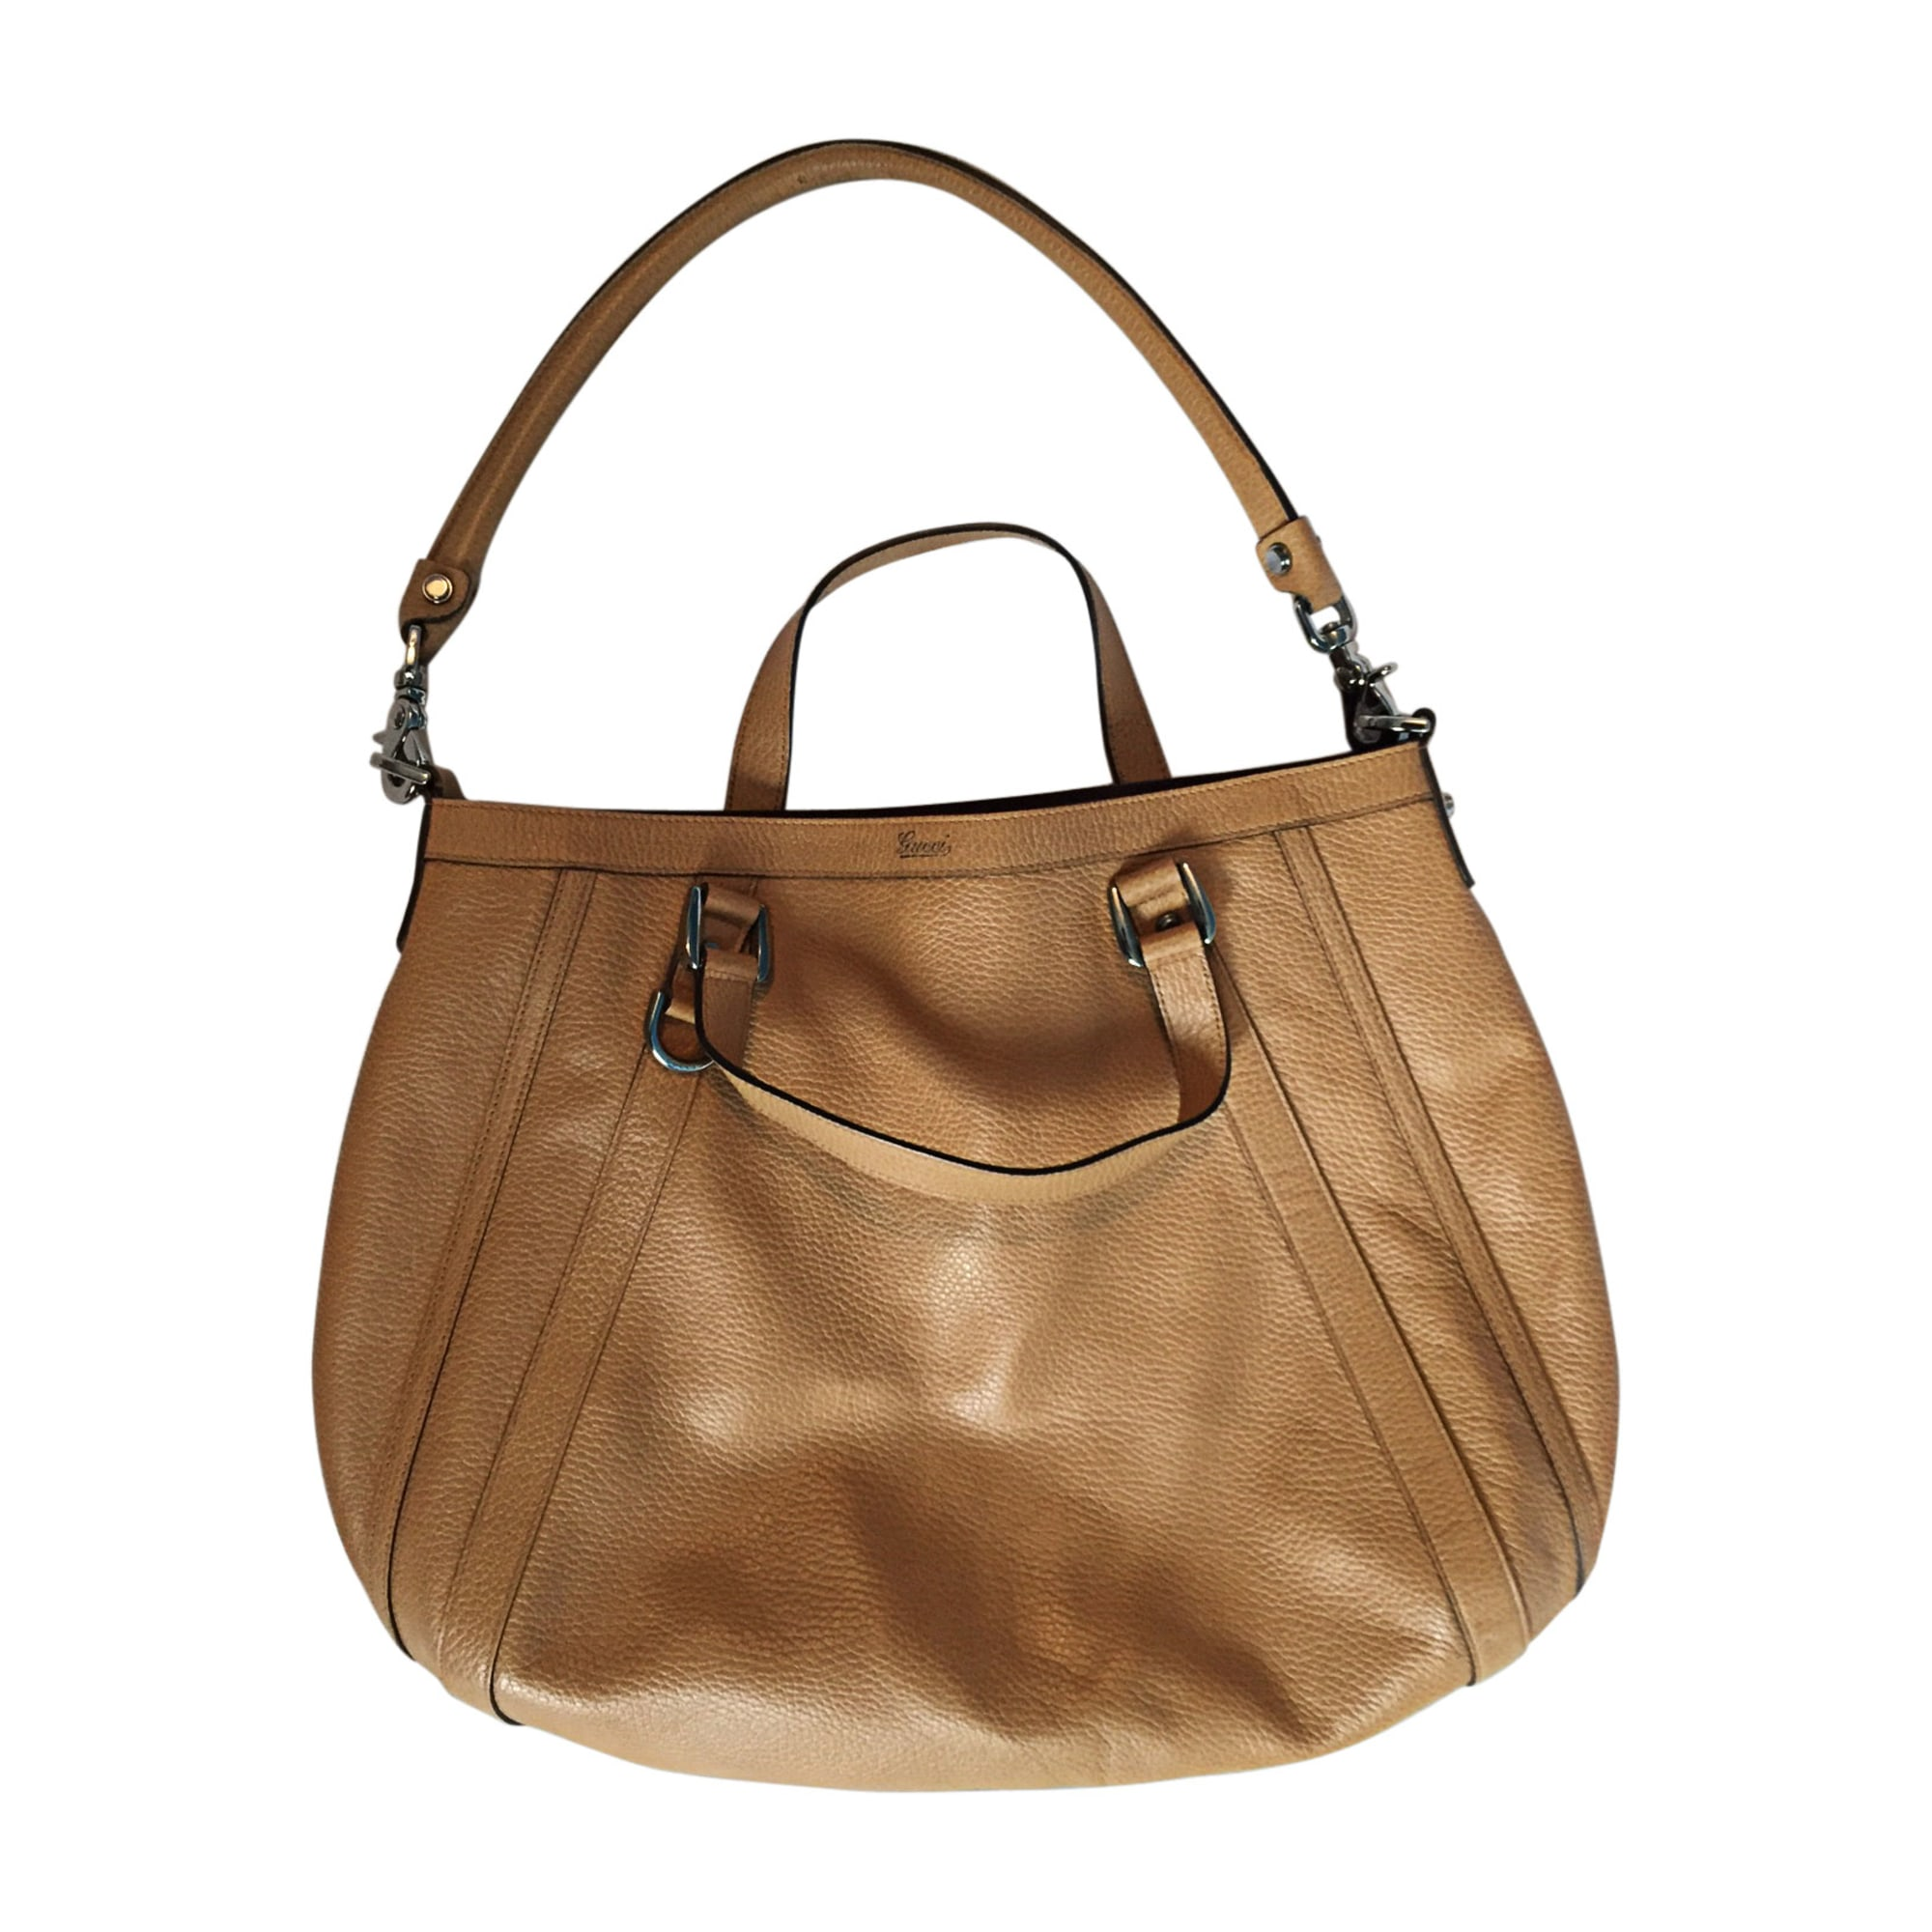 Leather Handbag GUCCI Beige, camel